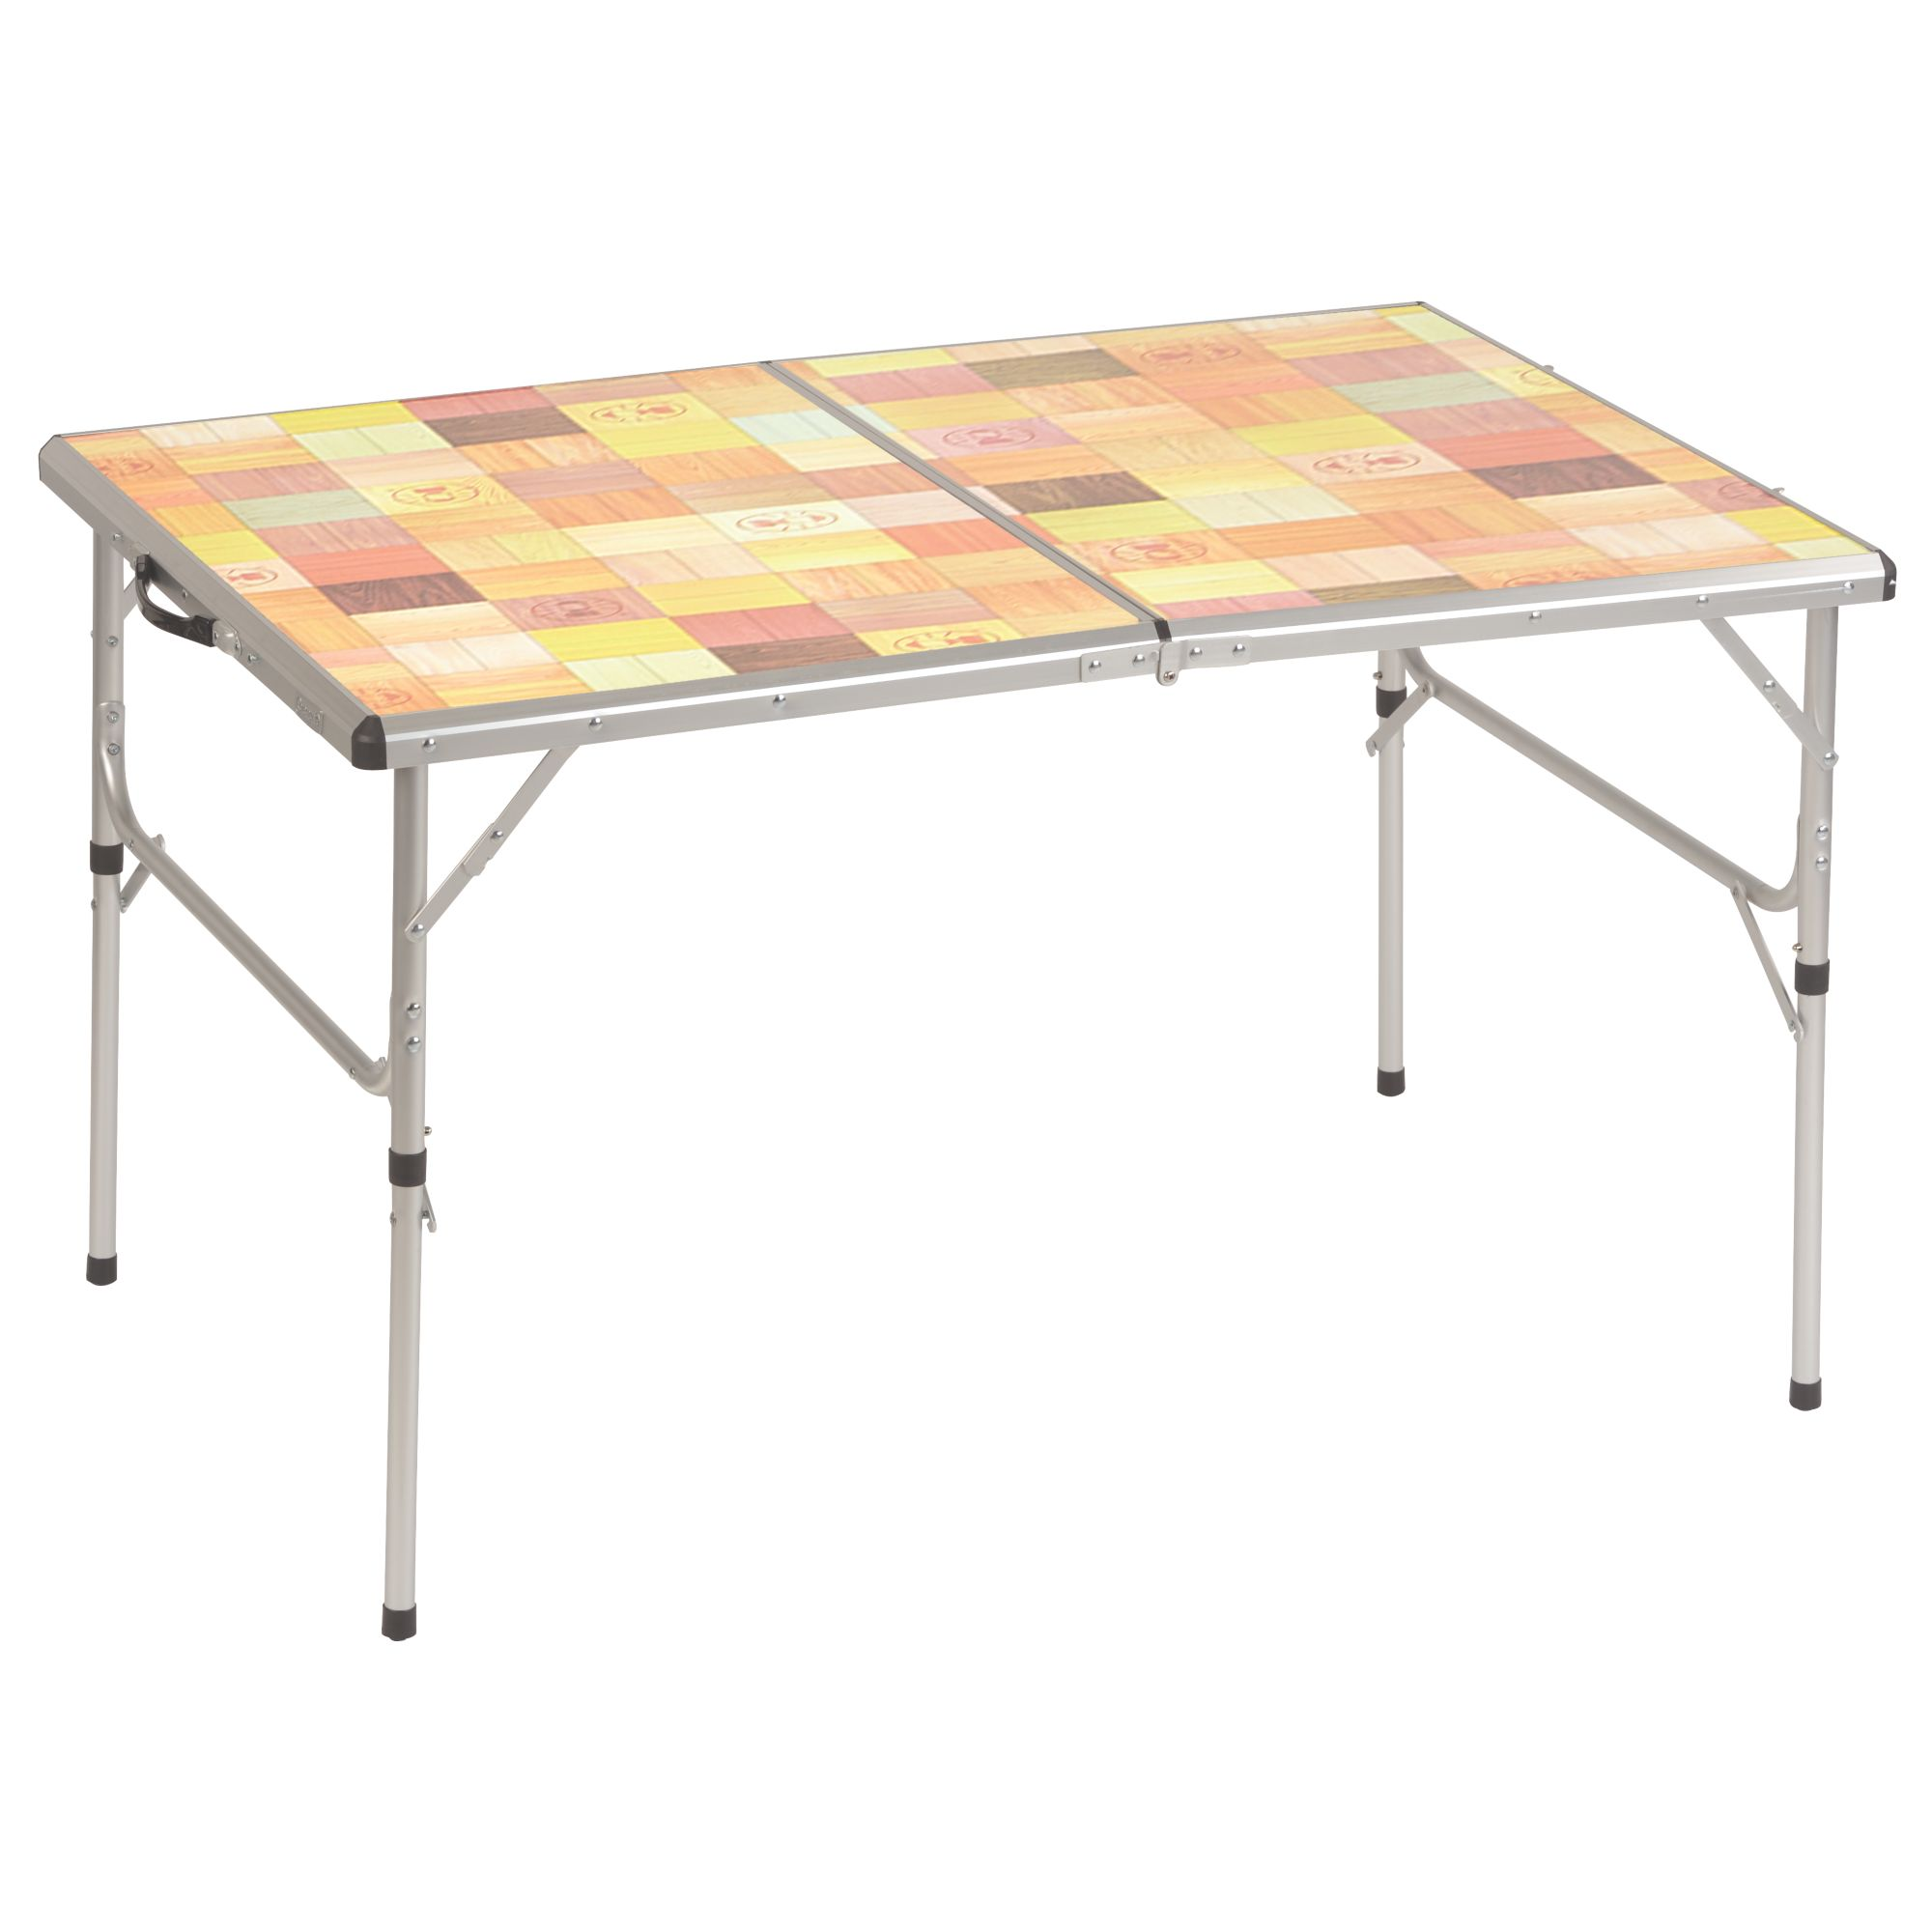 Outstanding Pack Away Folding Table Coleman Unemploymentrelief Wooden Chair Designs For Living Room Unemploymentrelieforg